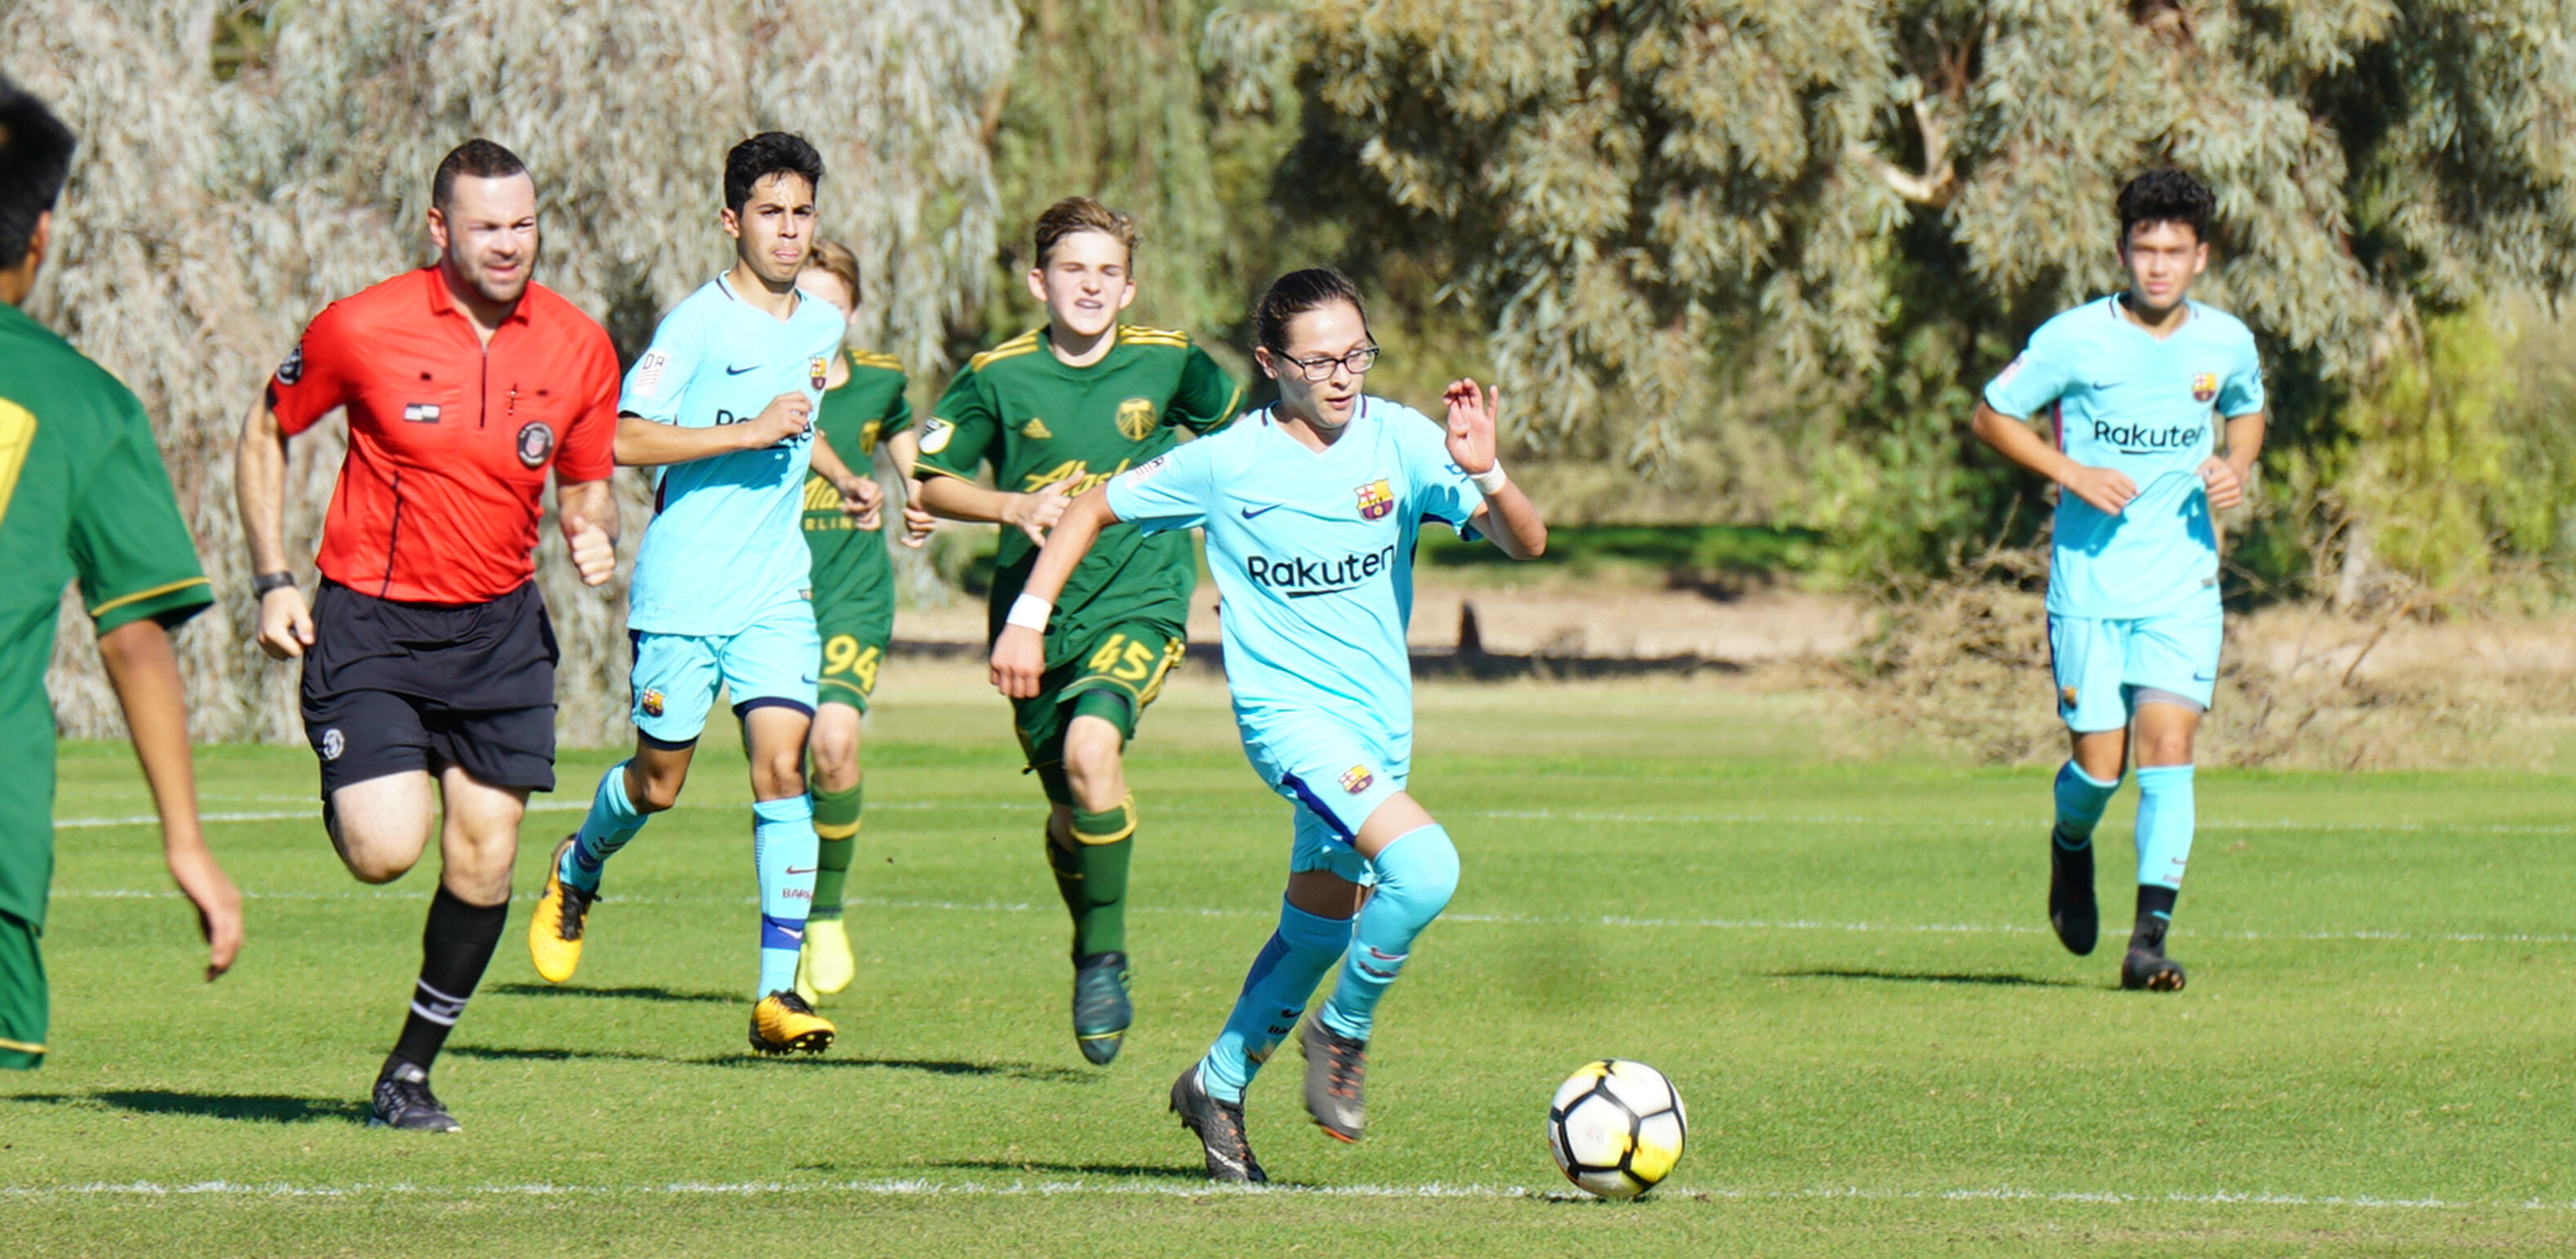 Weekend of soccer thrillers for Barca Academy